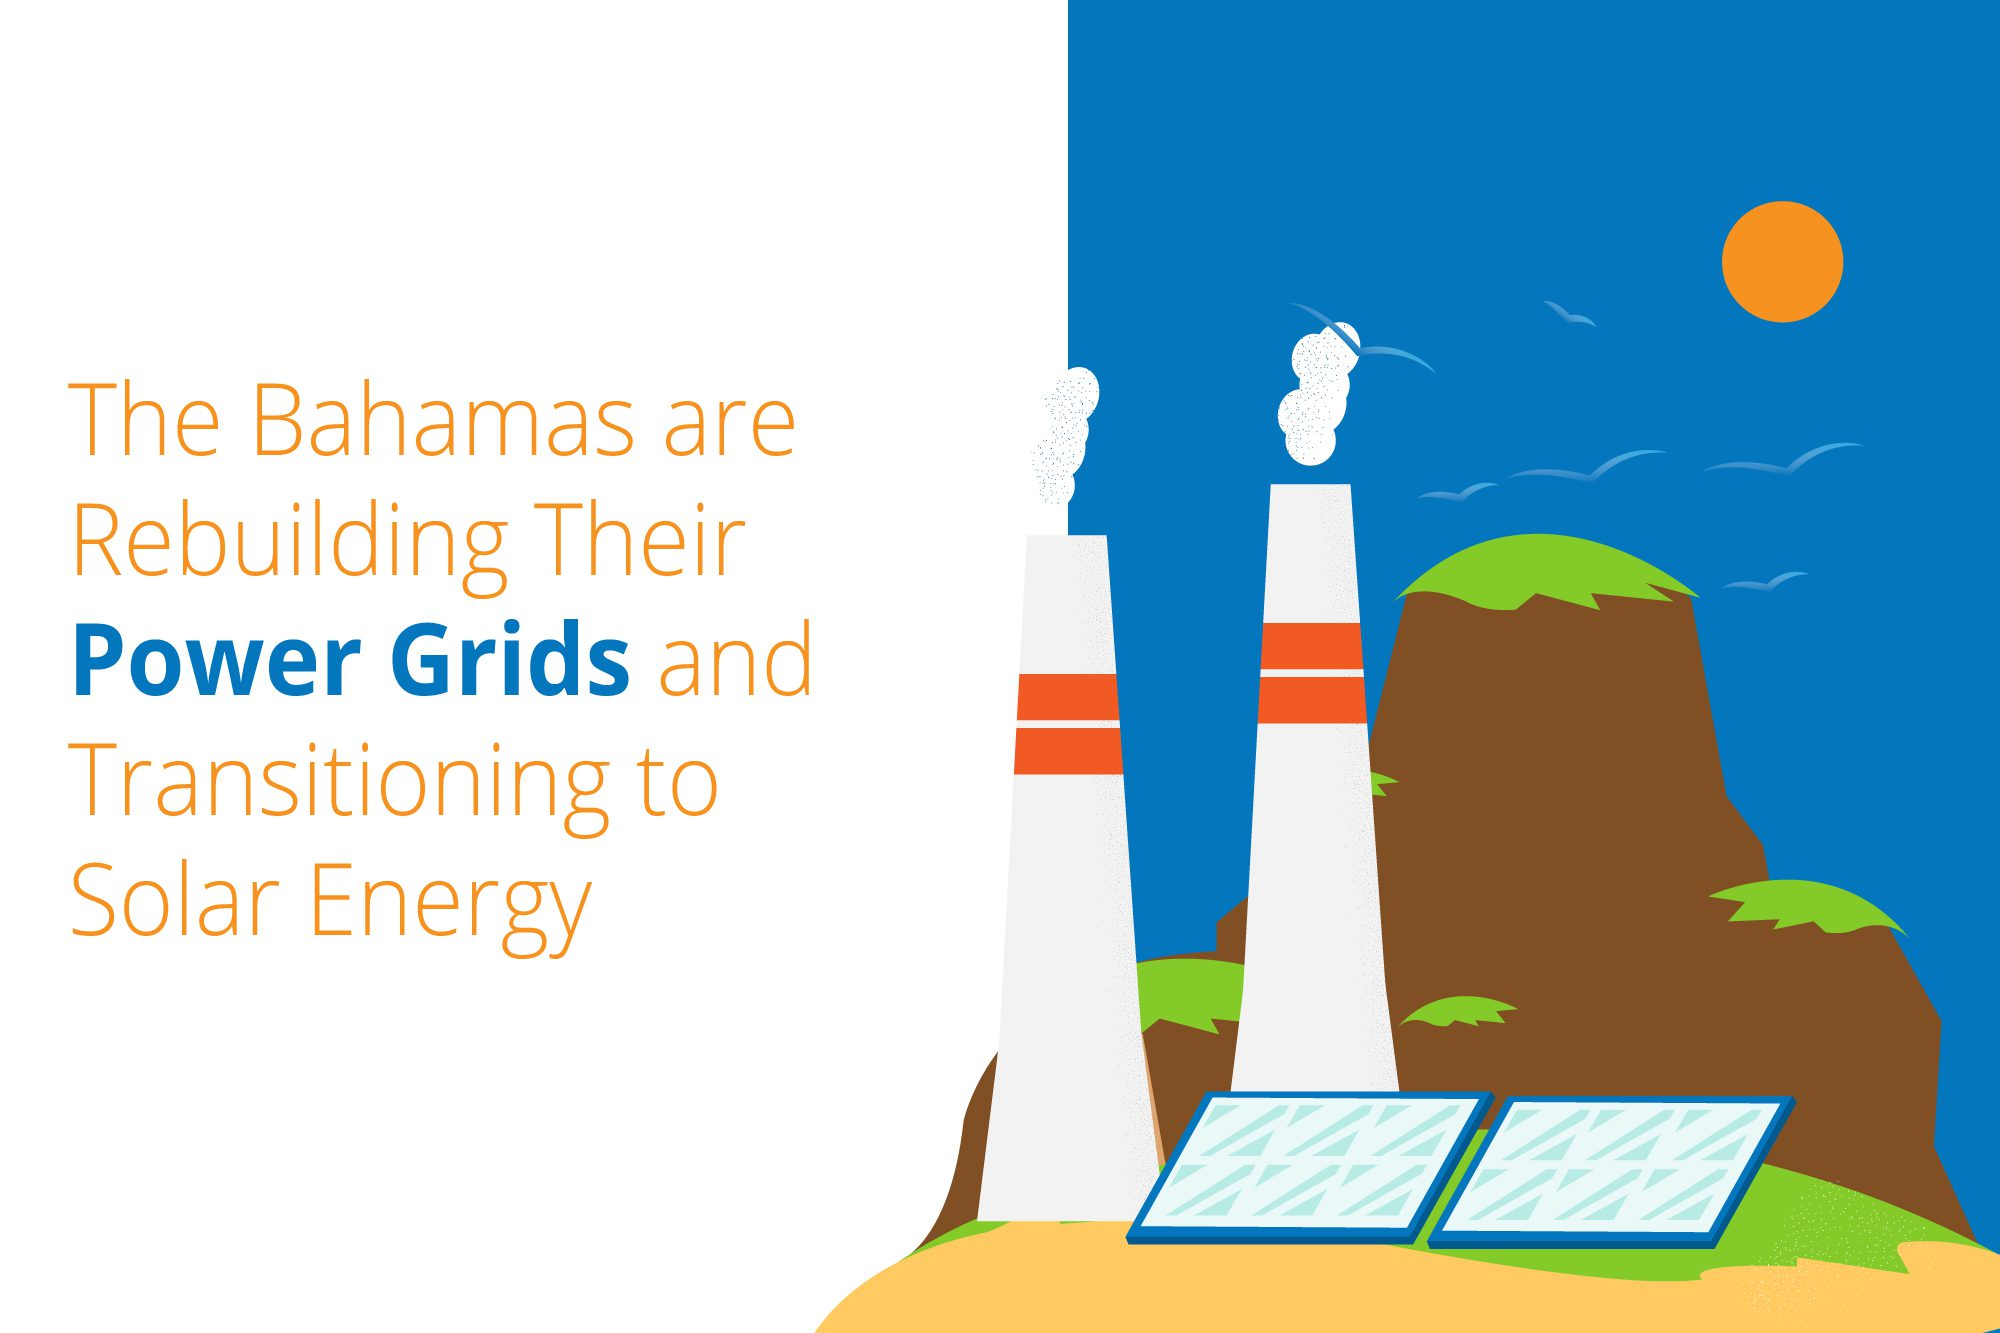 The Bahamas are converting to solar energy